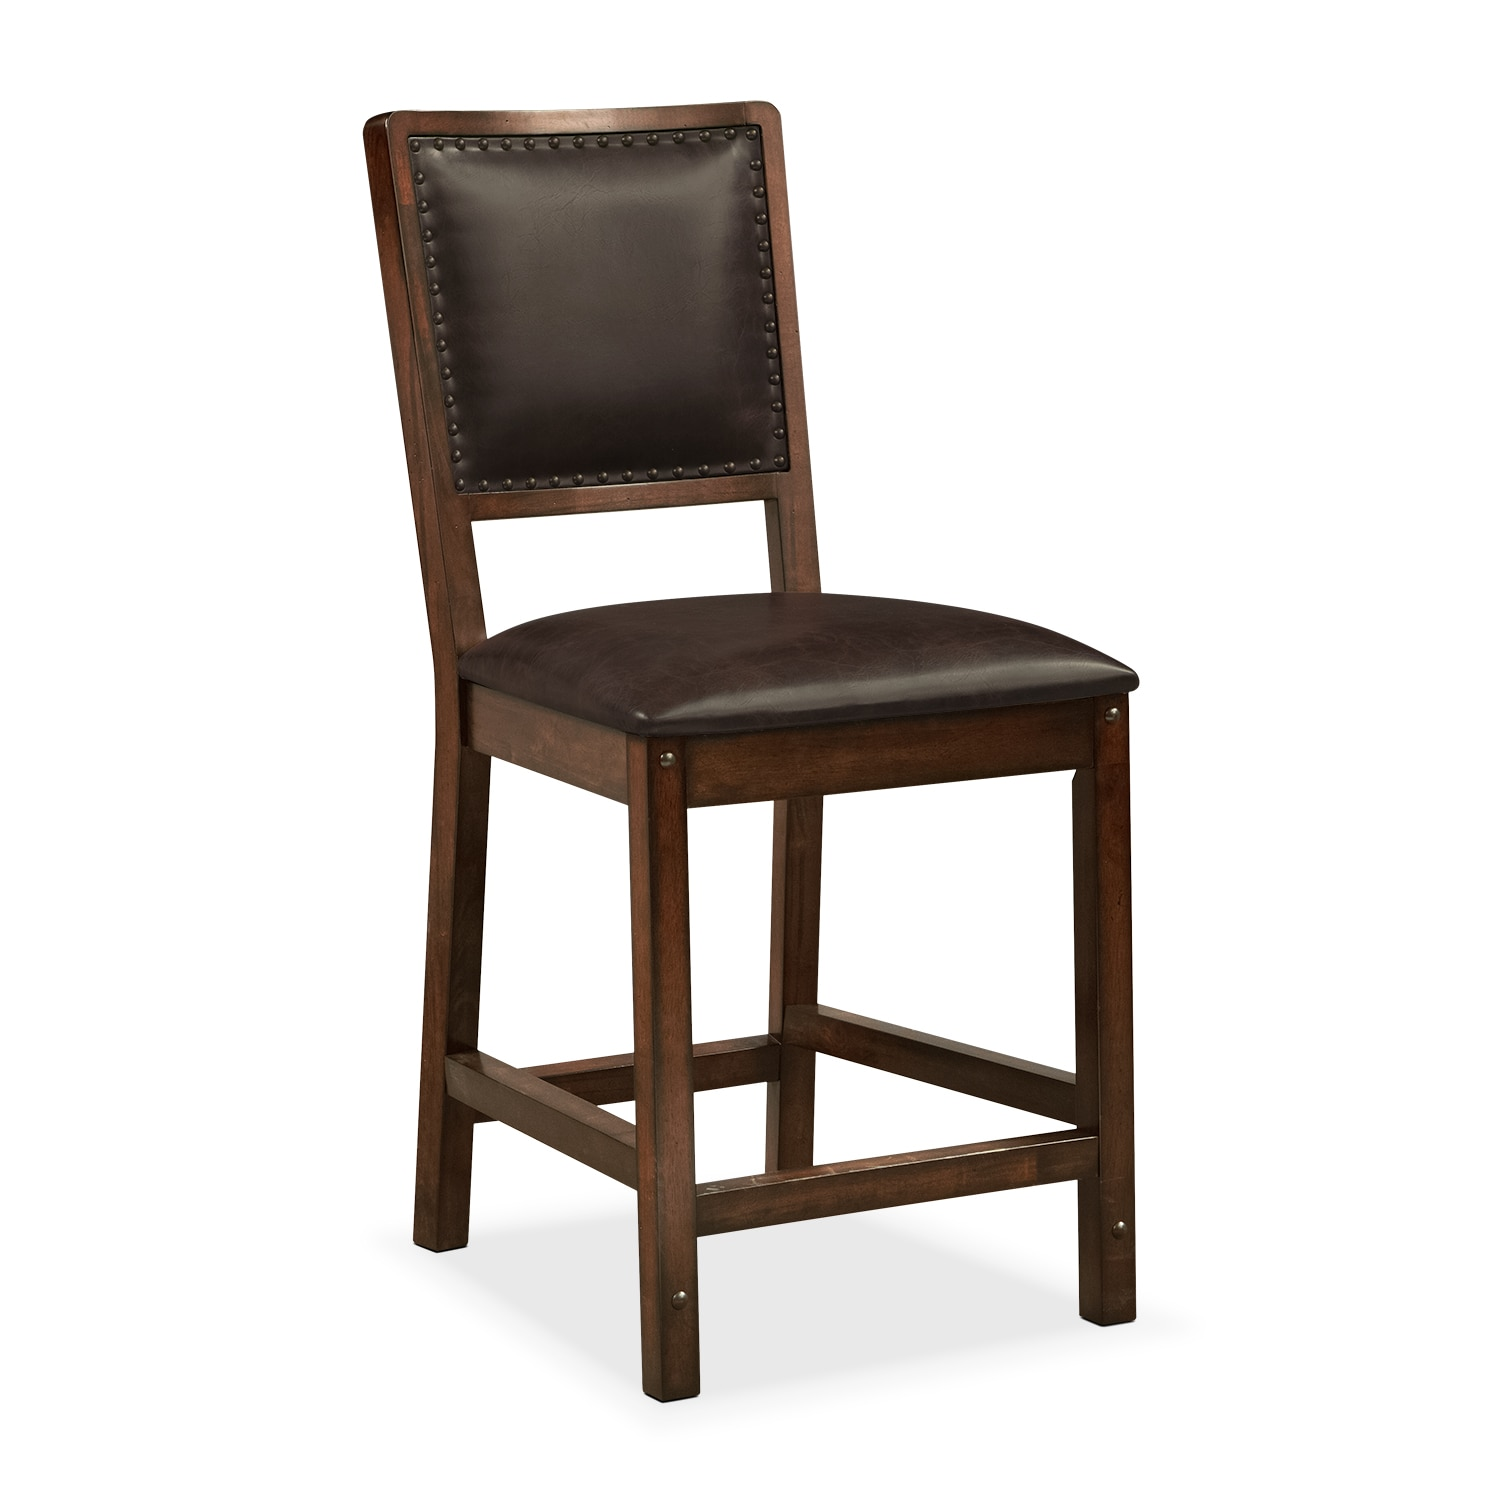 Dining Room Furniture - Newcastle Counter-Height Chair - Mahogany